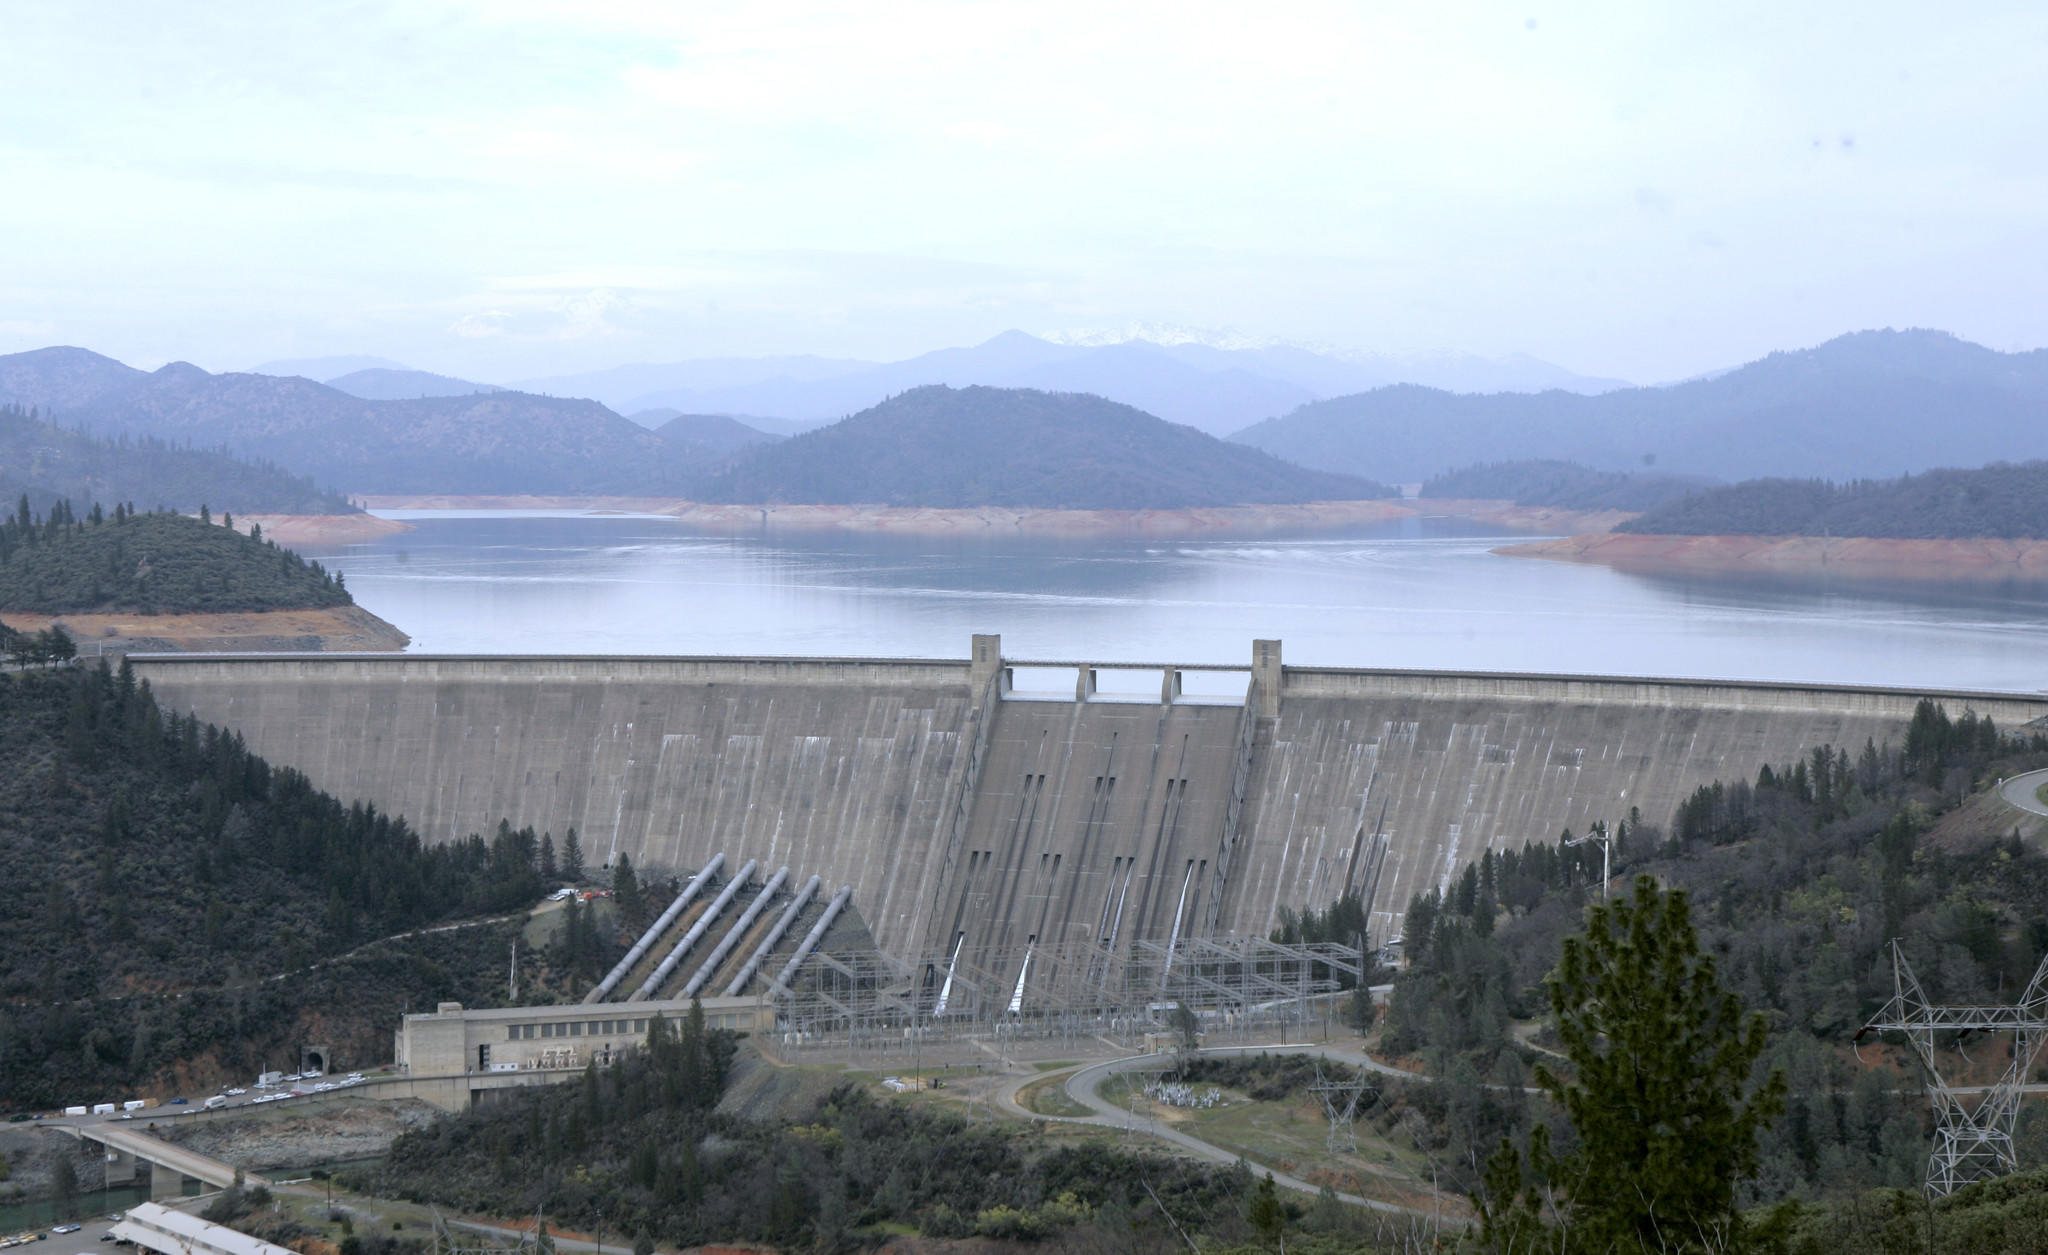 The 602-foot, concrete Shasta Dam near Shasta, Calif.